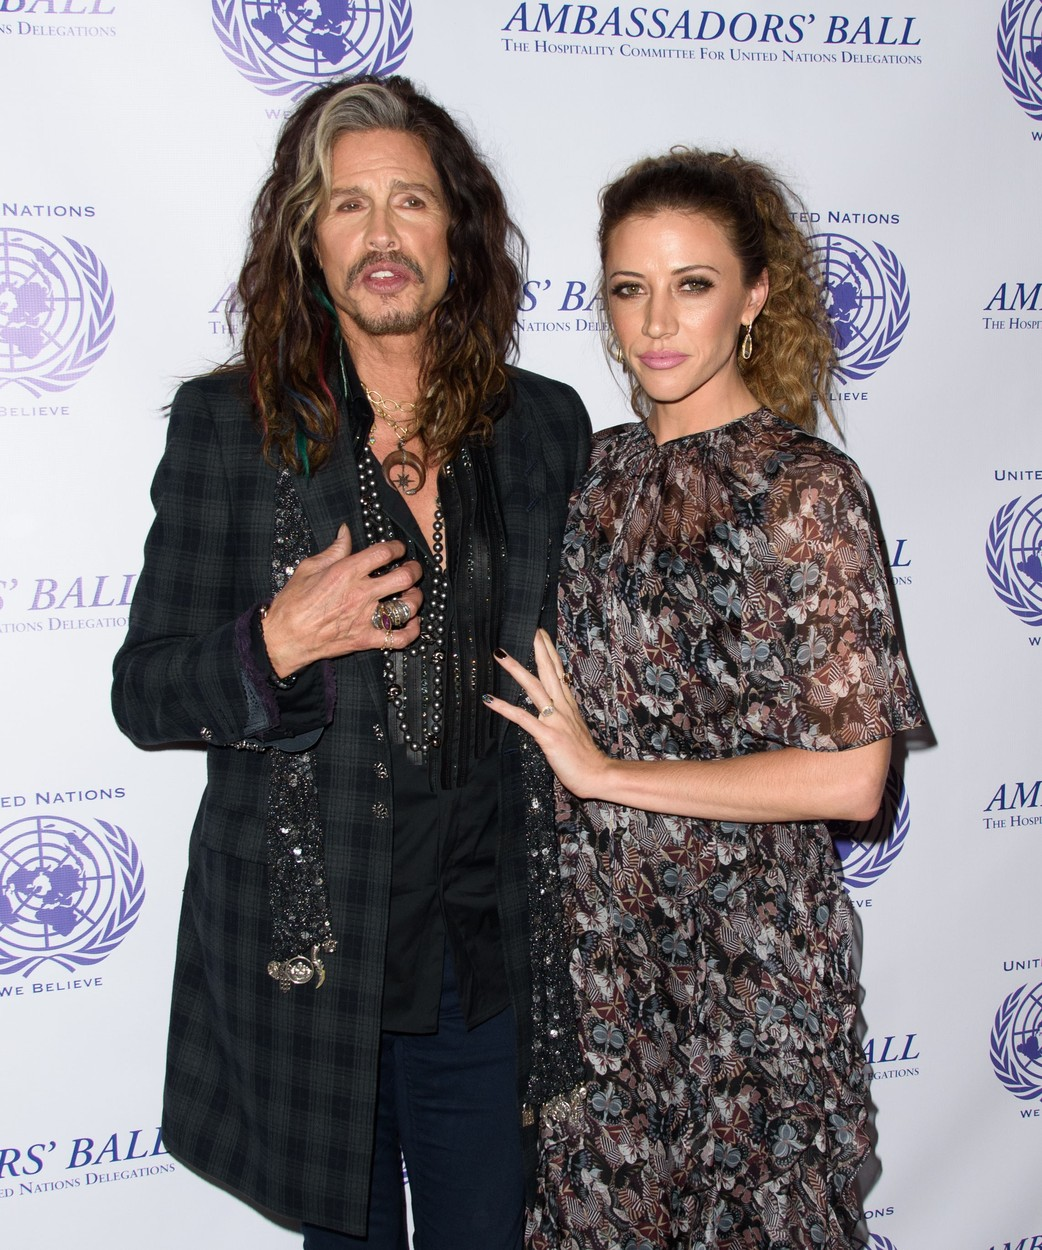 , New York, NY - 12/03/16 - Steven Tyler Honored at UN Ambassadors' Ball  -PICTURED: Steven Tyler and Aimee Ann Preston -, Image: 307539012, License: Rights-managed, Restrictions: , Model Release: no, Credit line: Profimedia, INSTAR Images